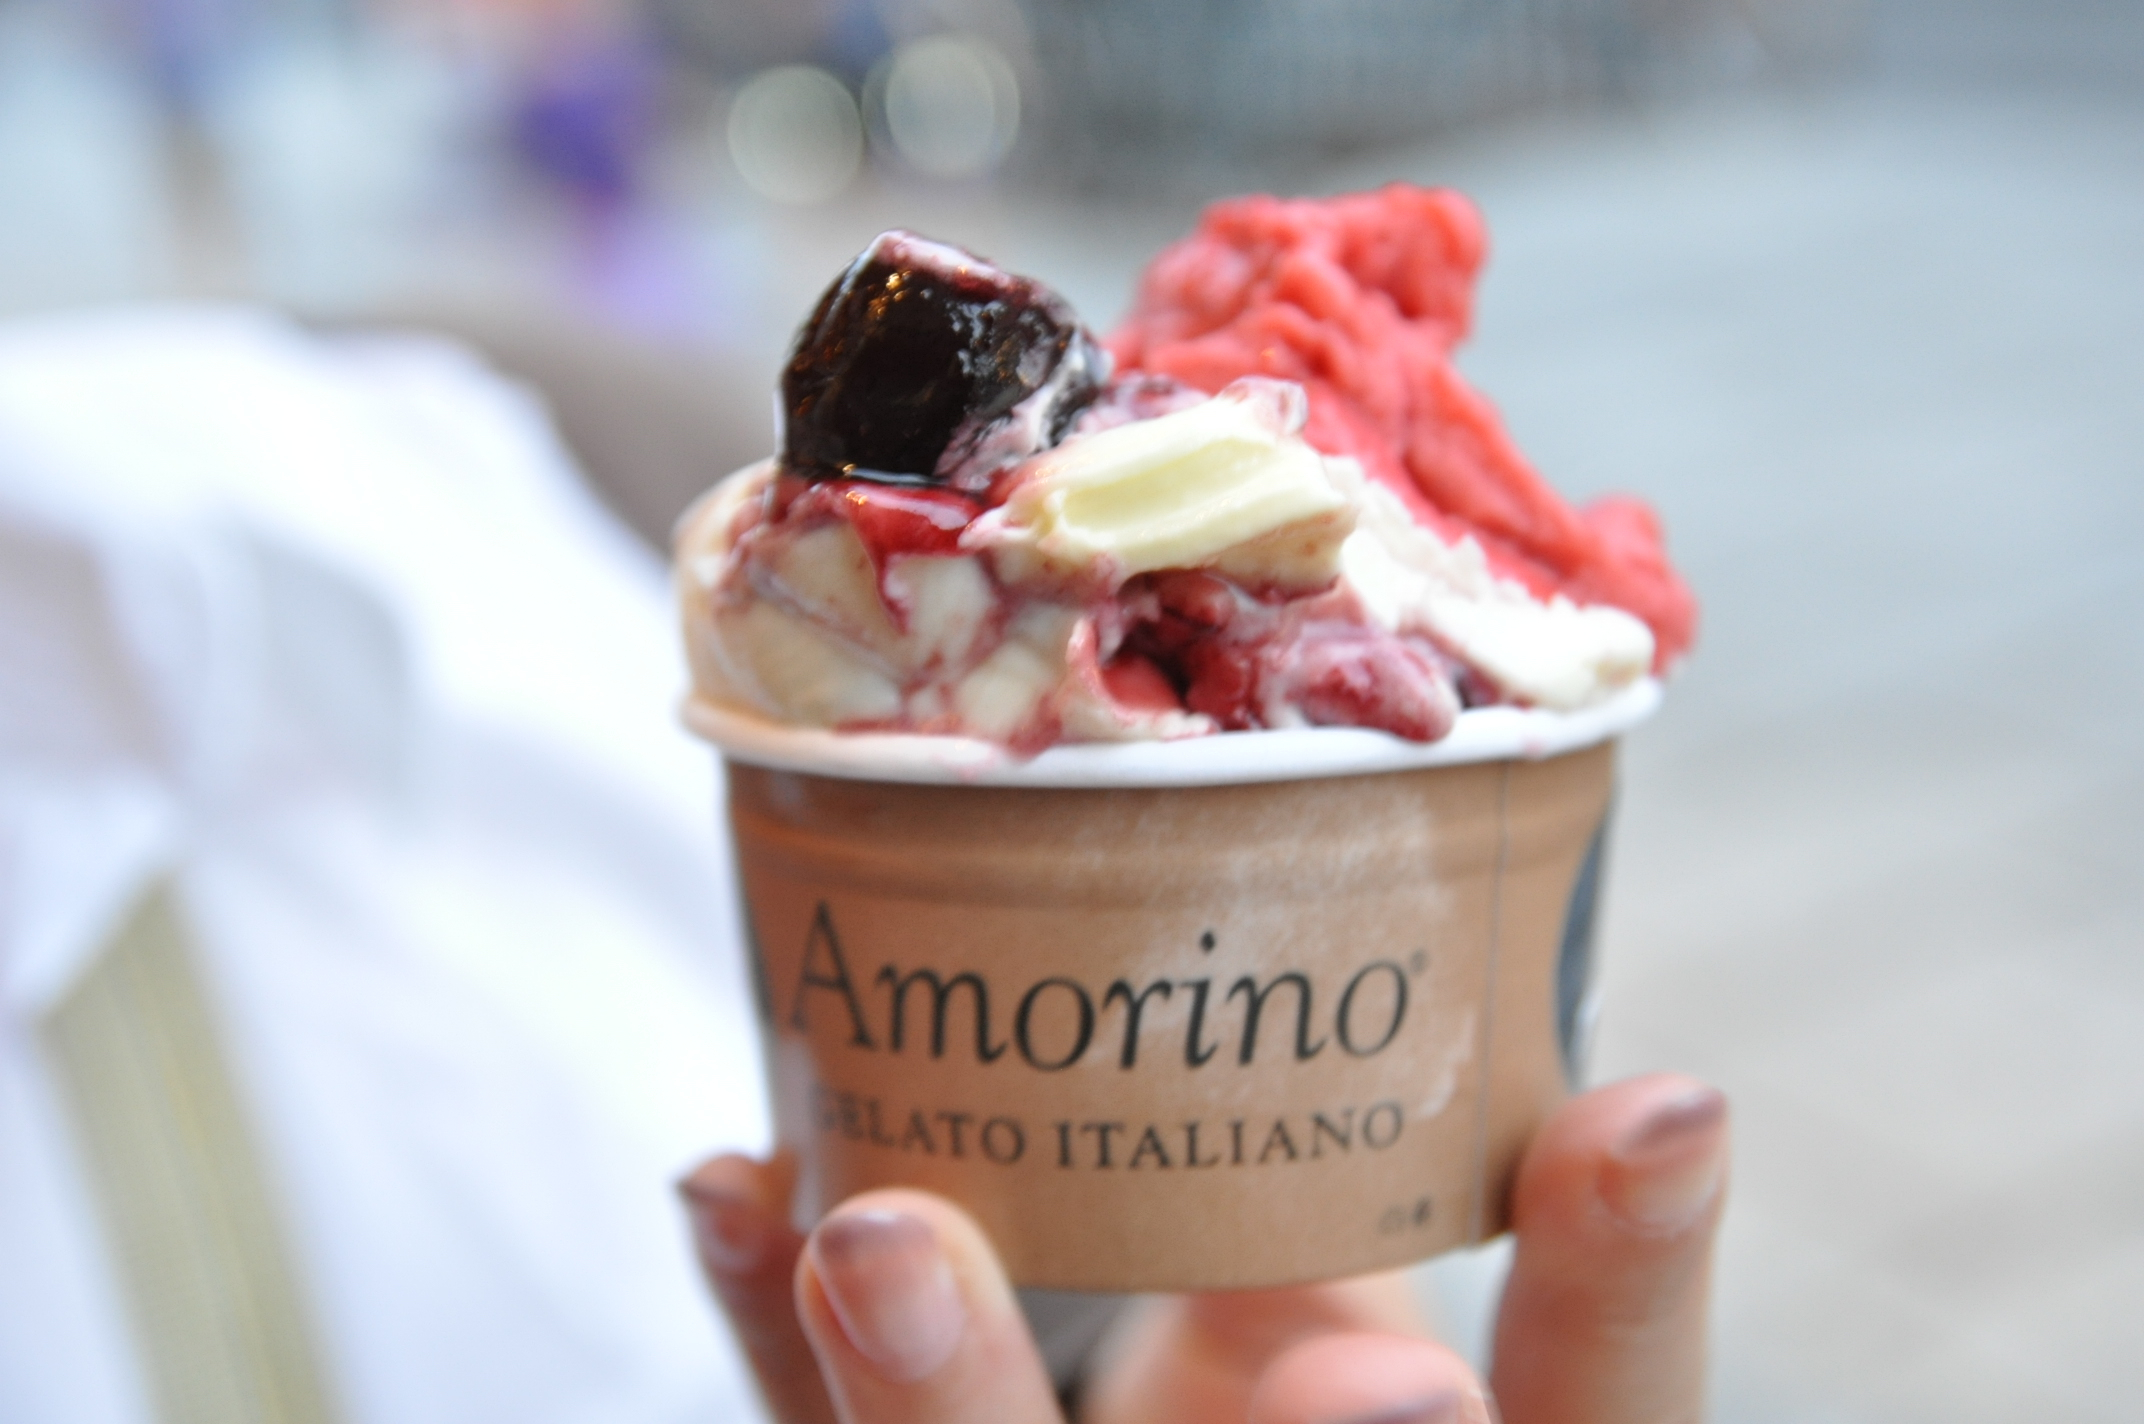 Amorino ice cream